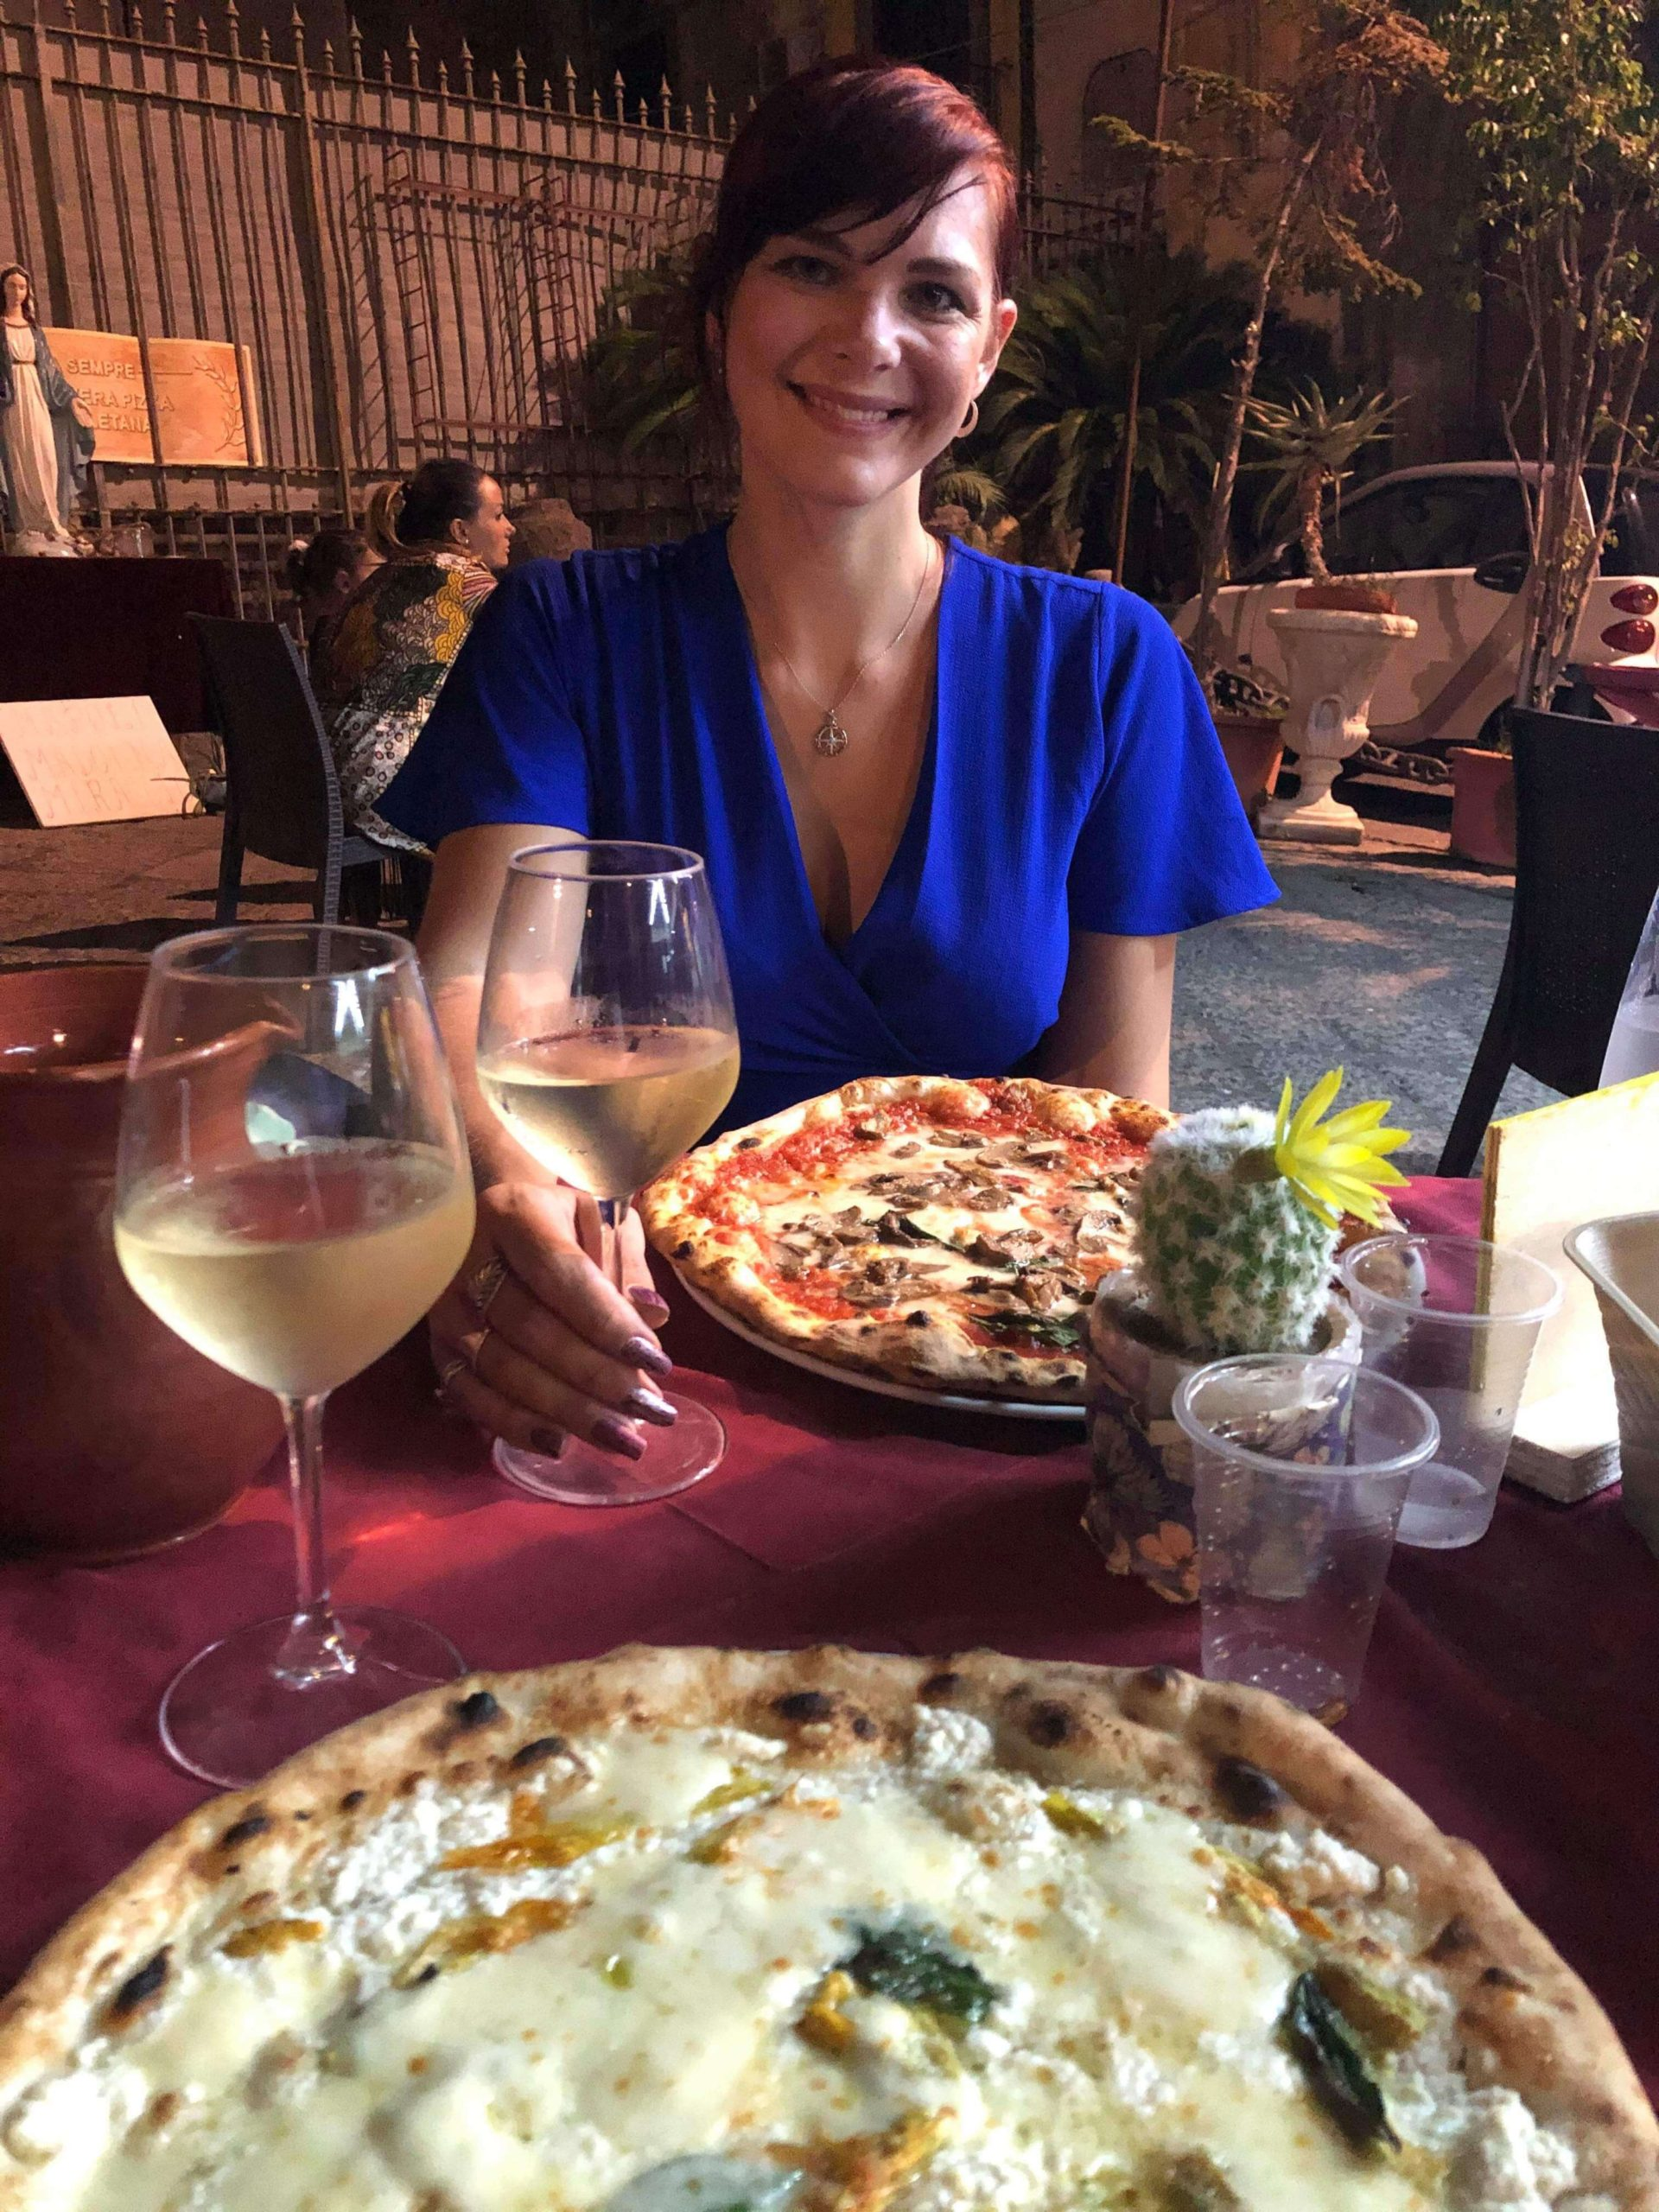 Things to do in Naples - woman eating a pizza in a pizzeria